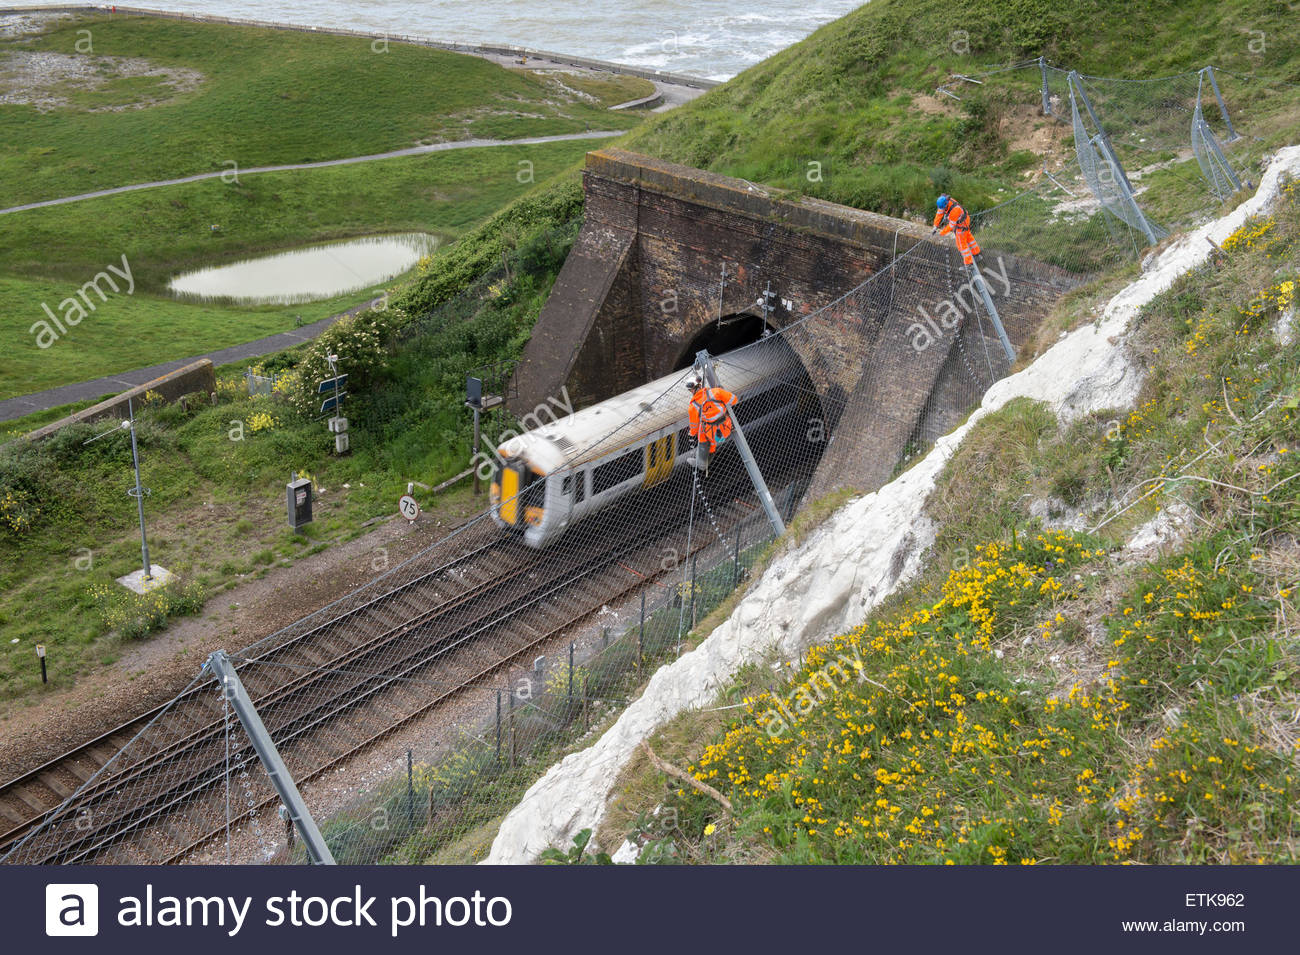 Workers at height constructing catch fence to protect railway below the White Cliffs of Dover - Stock Image